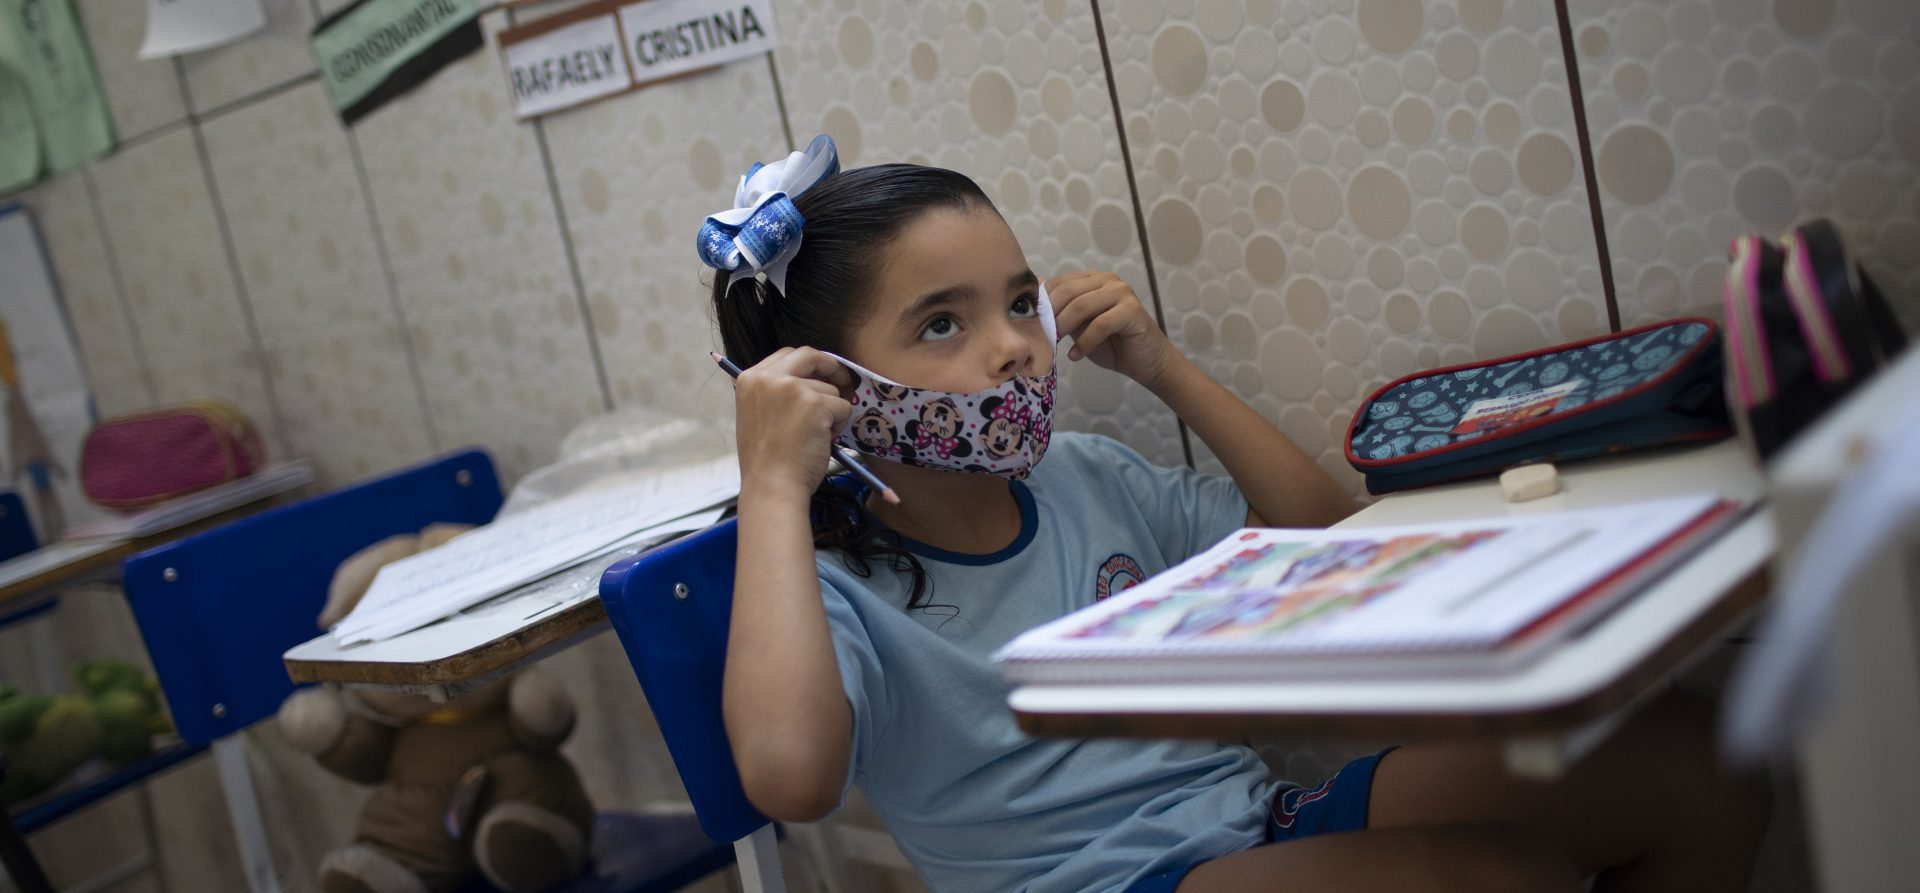 Rafaely de Melo puts on her protective mask during a class at the Pereira Agustinho daycare, nursery school and pre-school, after it reopened amid the new coronavirus pandemic in Duque de Caxias, Monday, July 6, 2020. The city of Manaus in the Amazon rainforest and Duque de Caxias in Rio de Janeiro's metropolitan region, became on Monday the first Brazilian cities to resume in-person classes at private schools since the onset of the COVID-19 pandemic, according to the nation's private school federation.